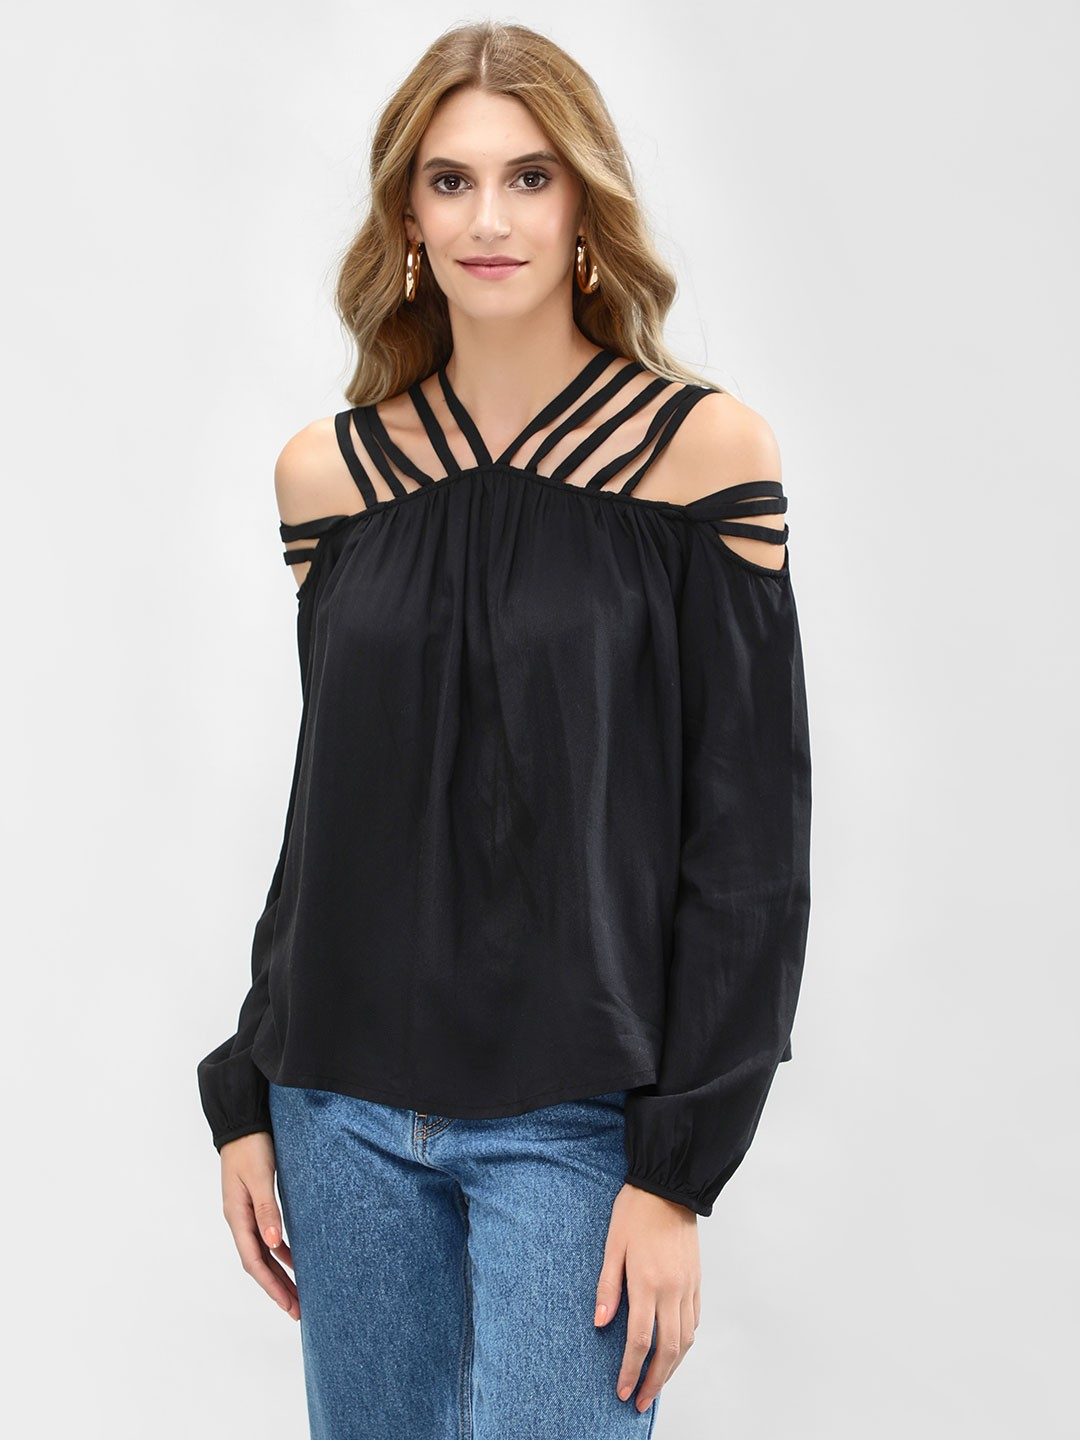 Sbuys Black Multi-Strap Off-Shoulder Top 1